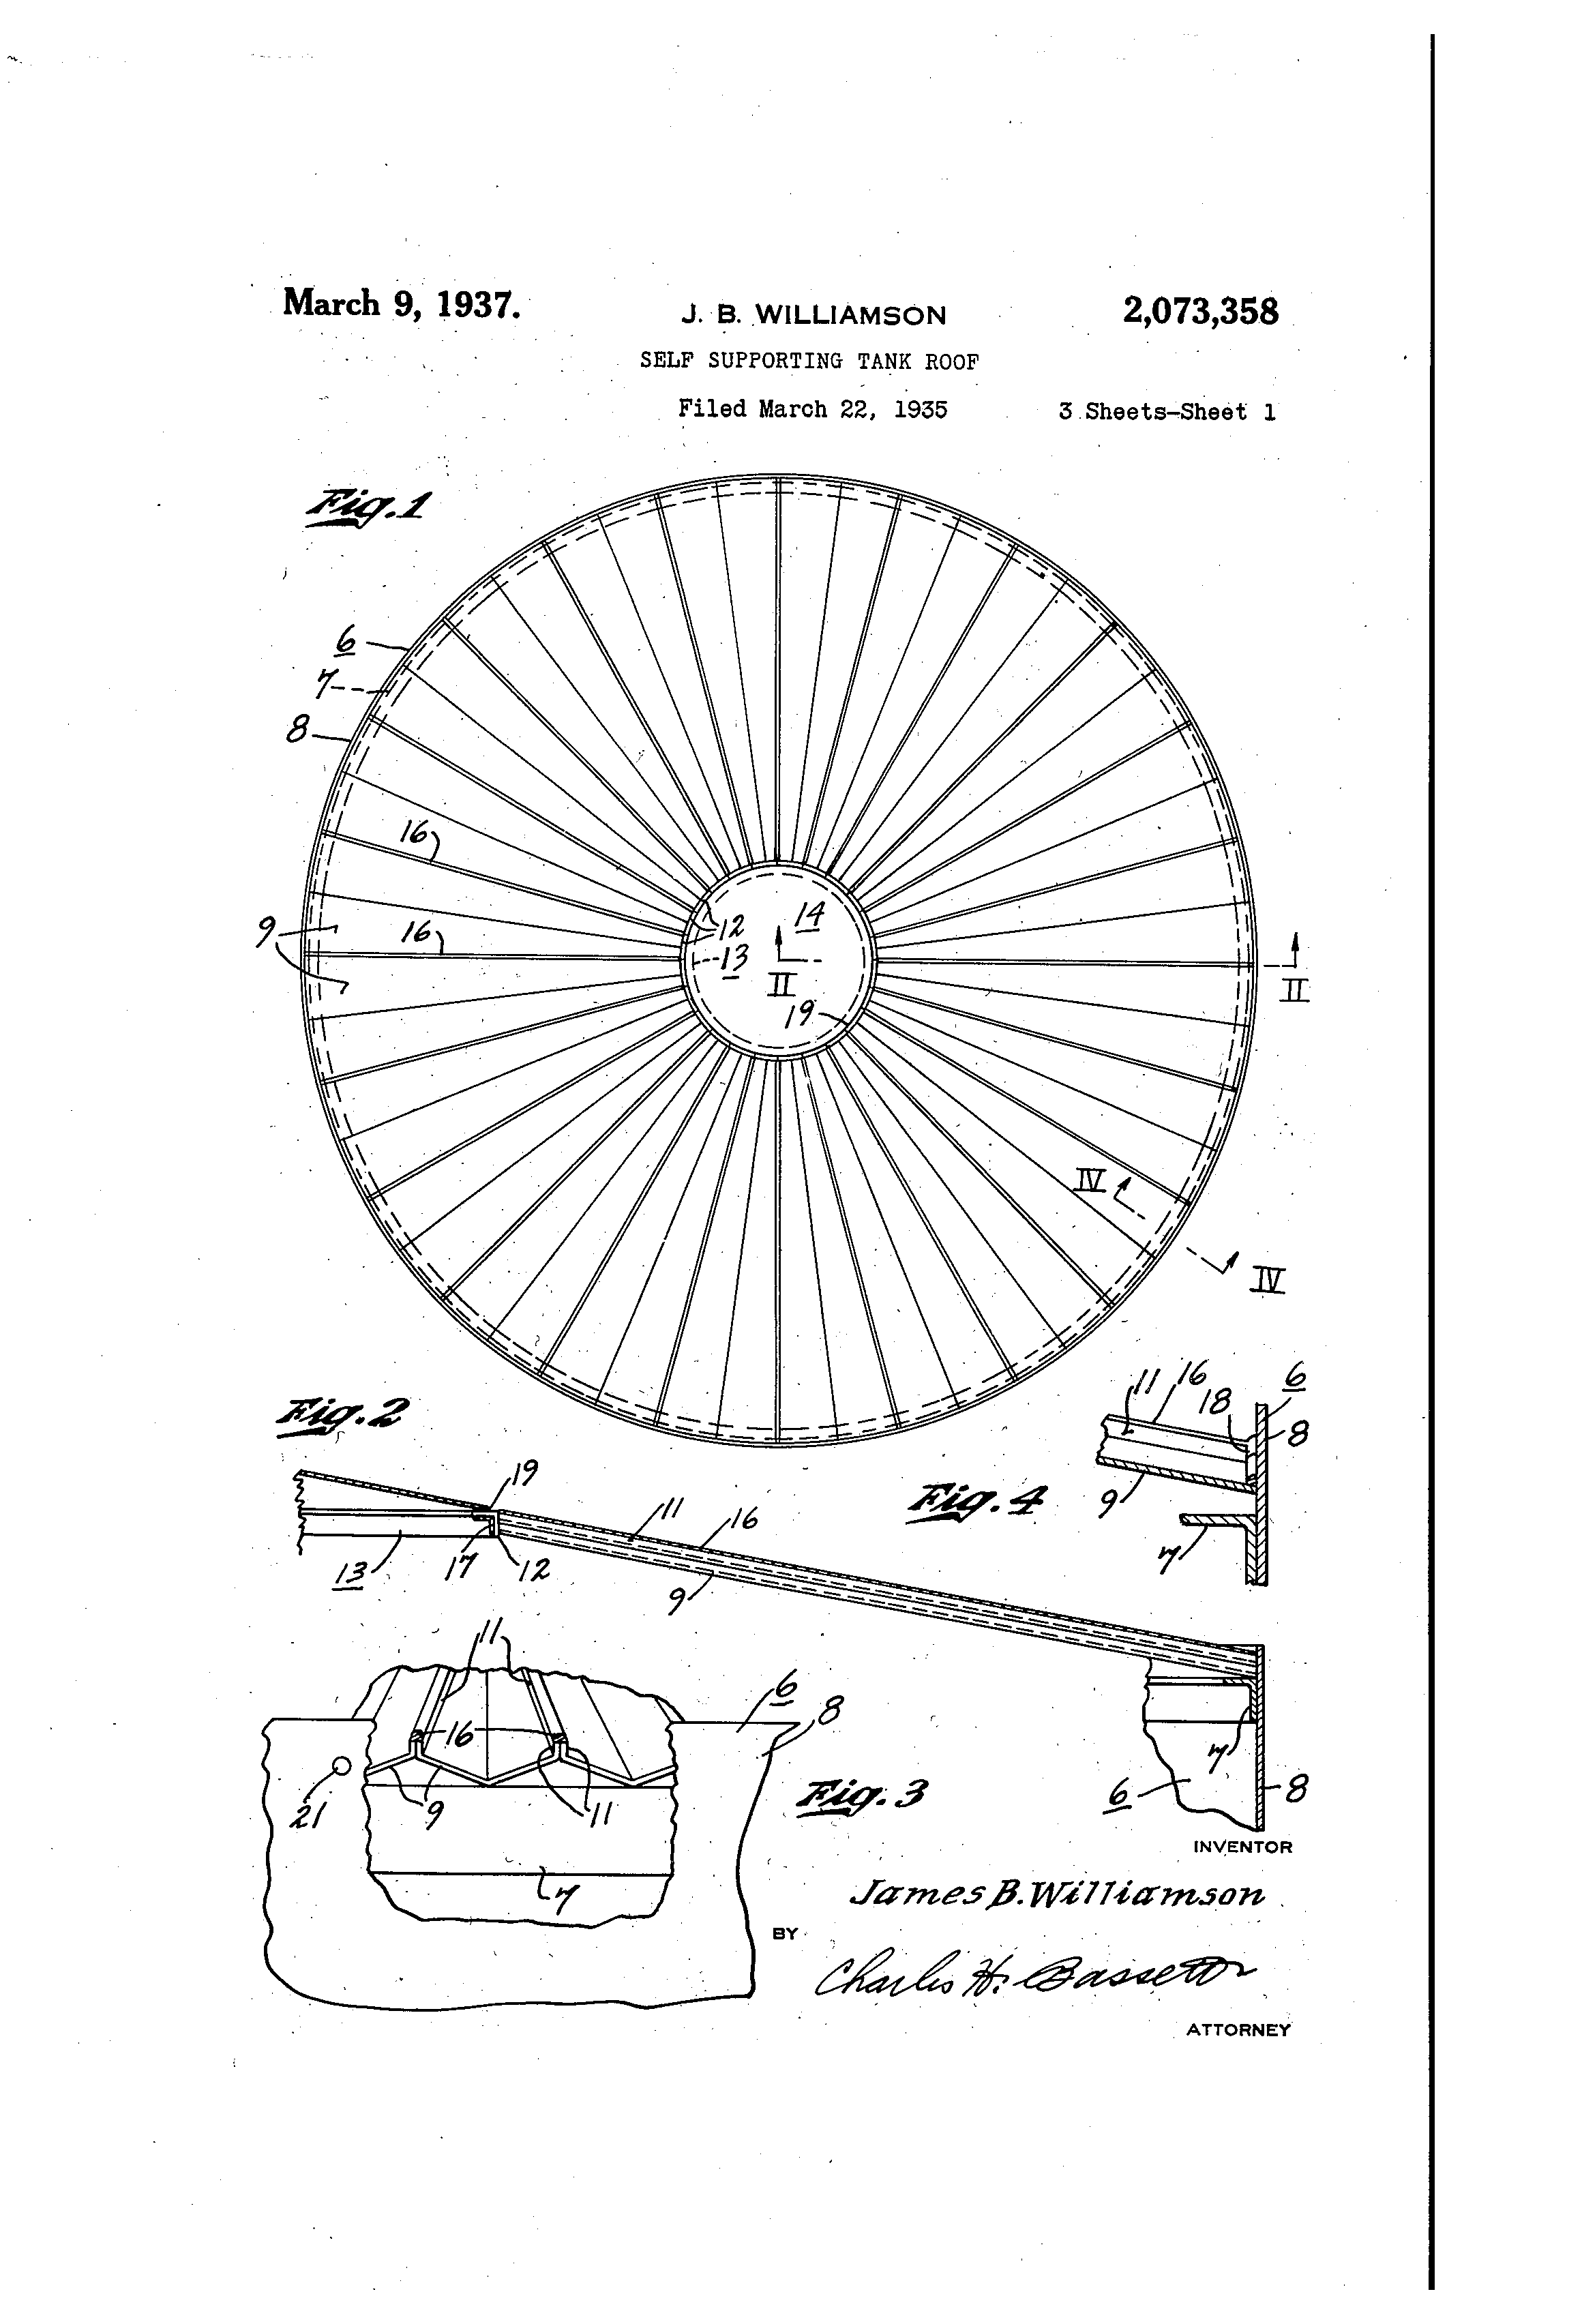 patent us2073358 - self-supporting tank roof